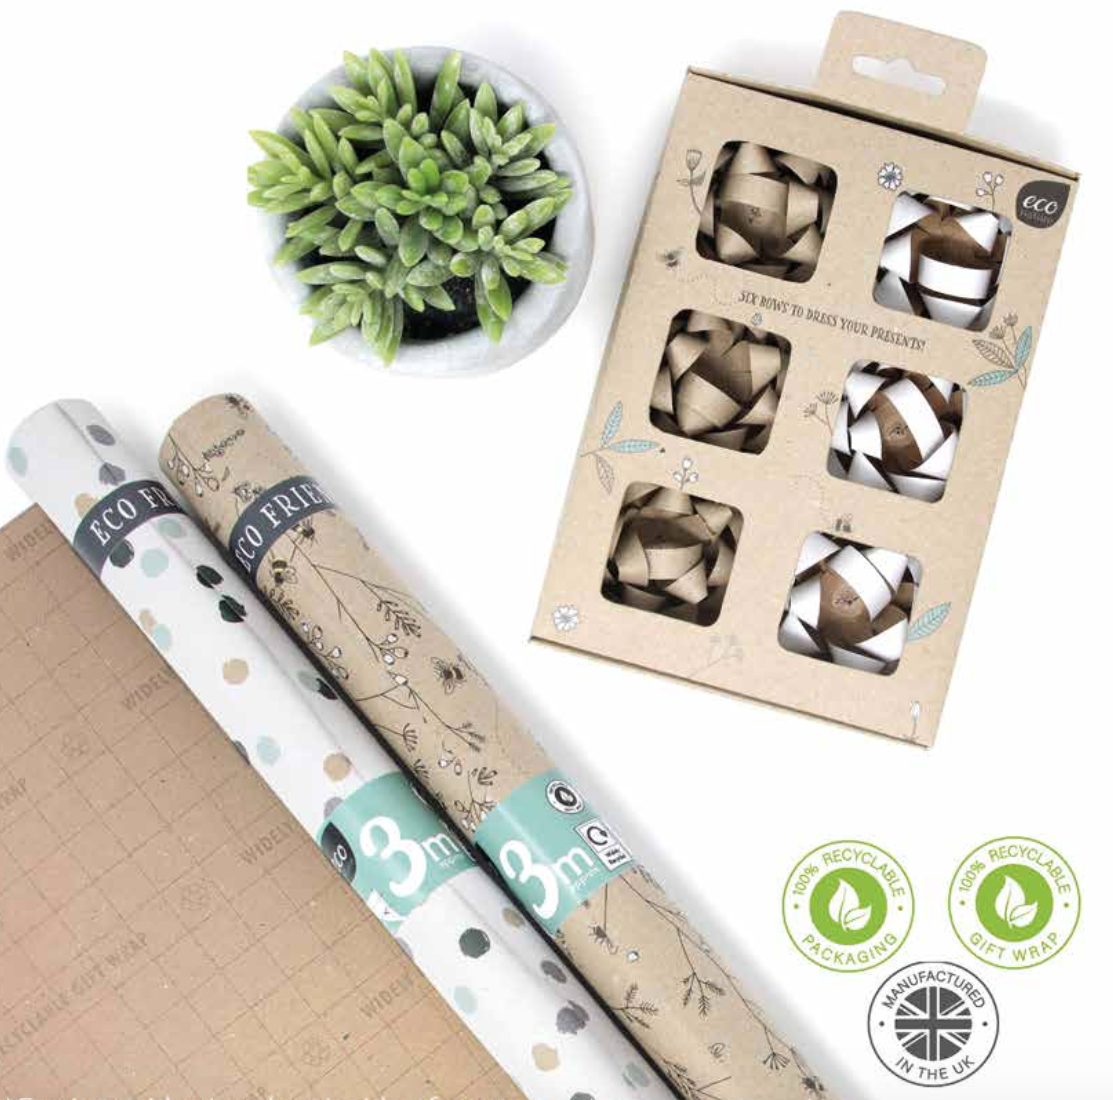 Above: The rollwrap in the new collection does not include any plastic shrinkwrap and the bows are all made of paper.